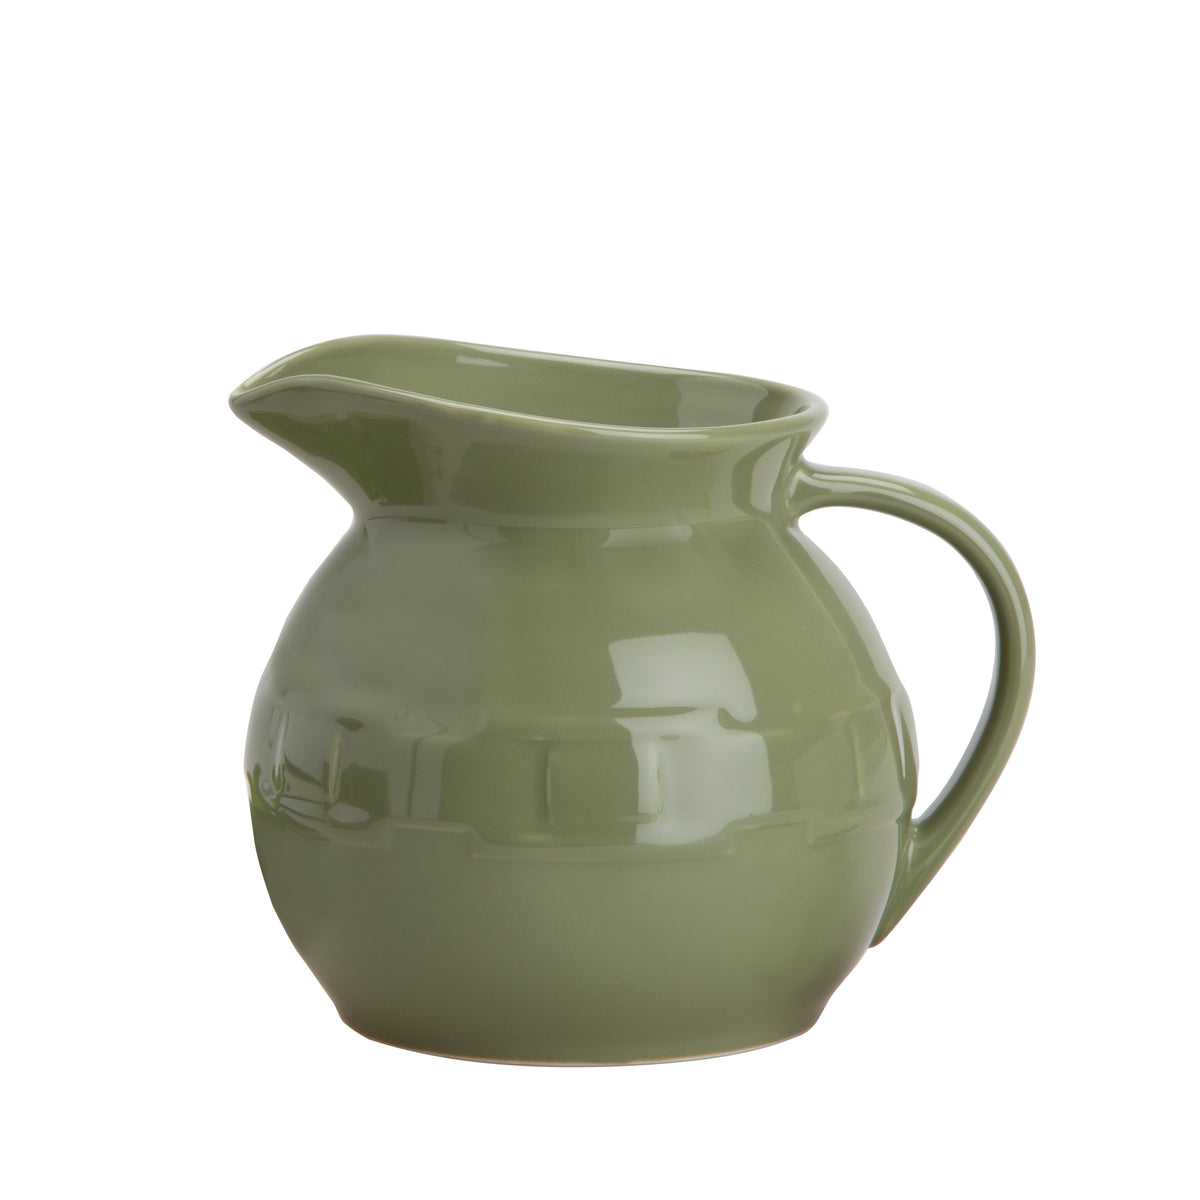 Woven Traditions Round Pitcher